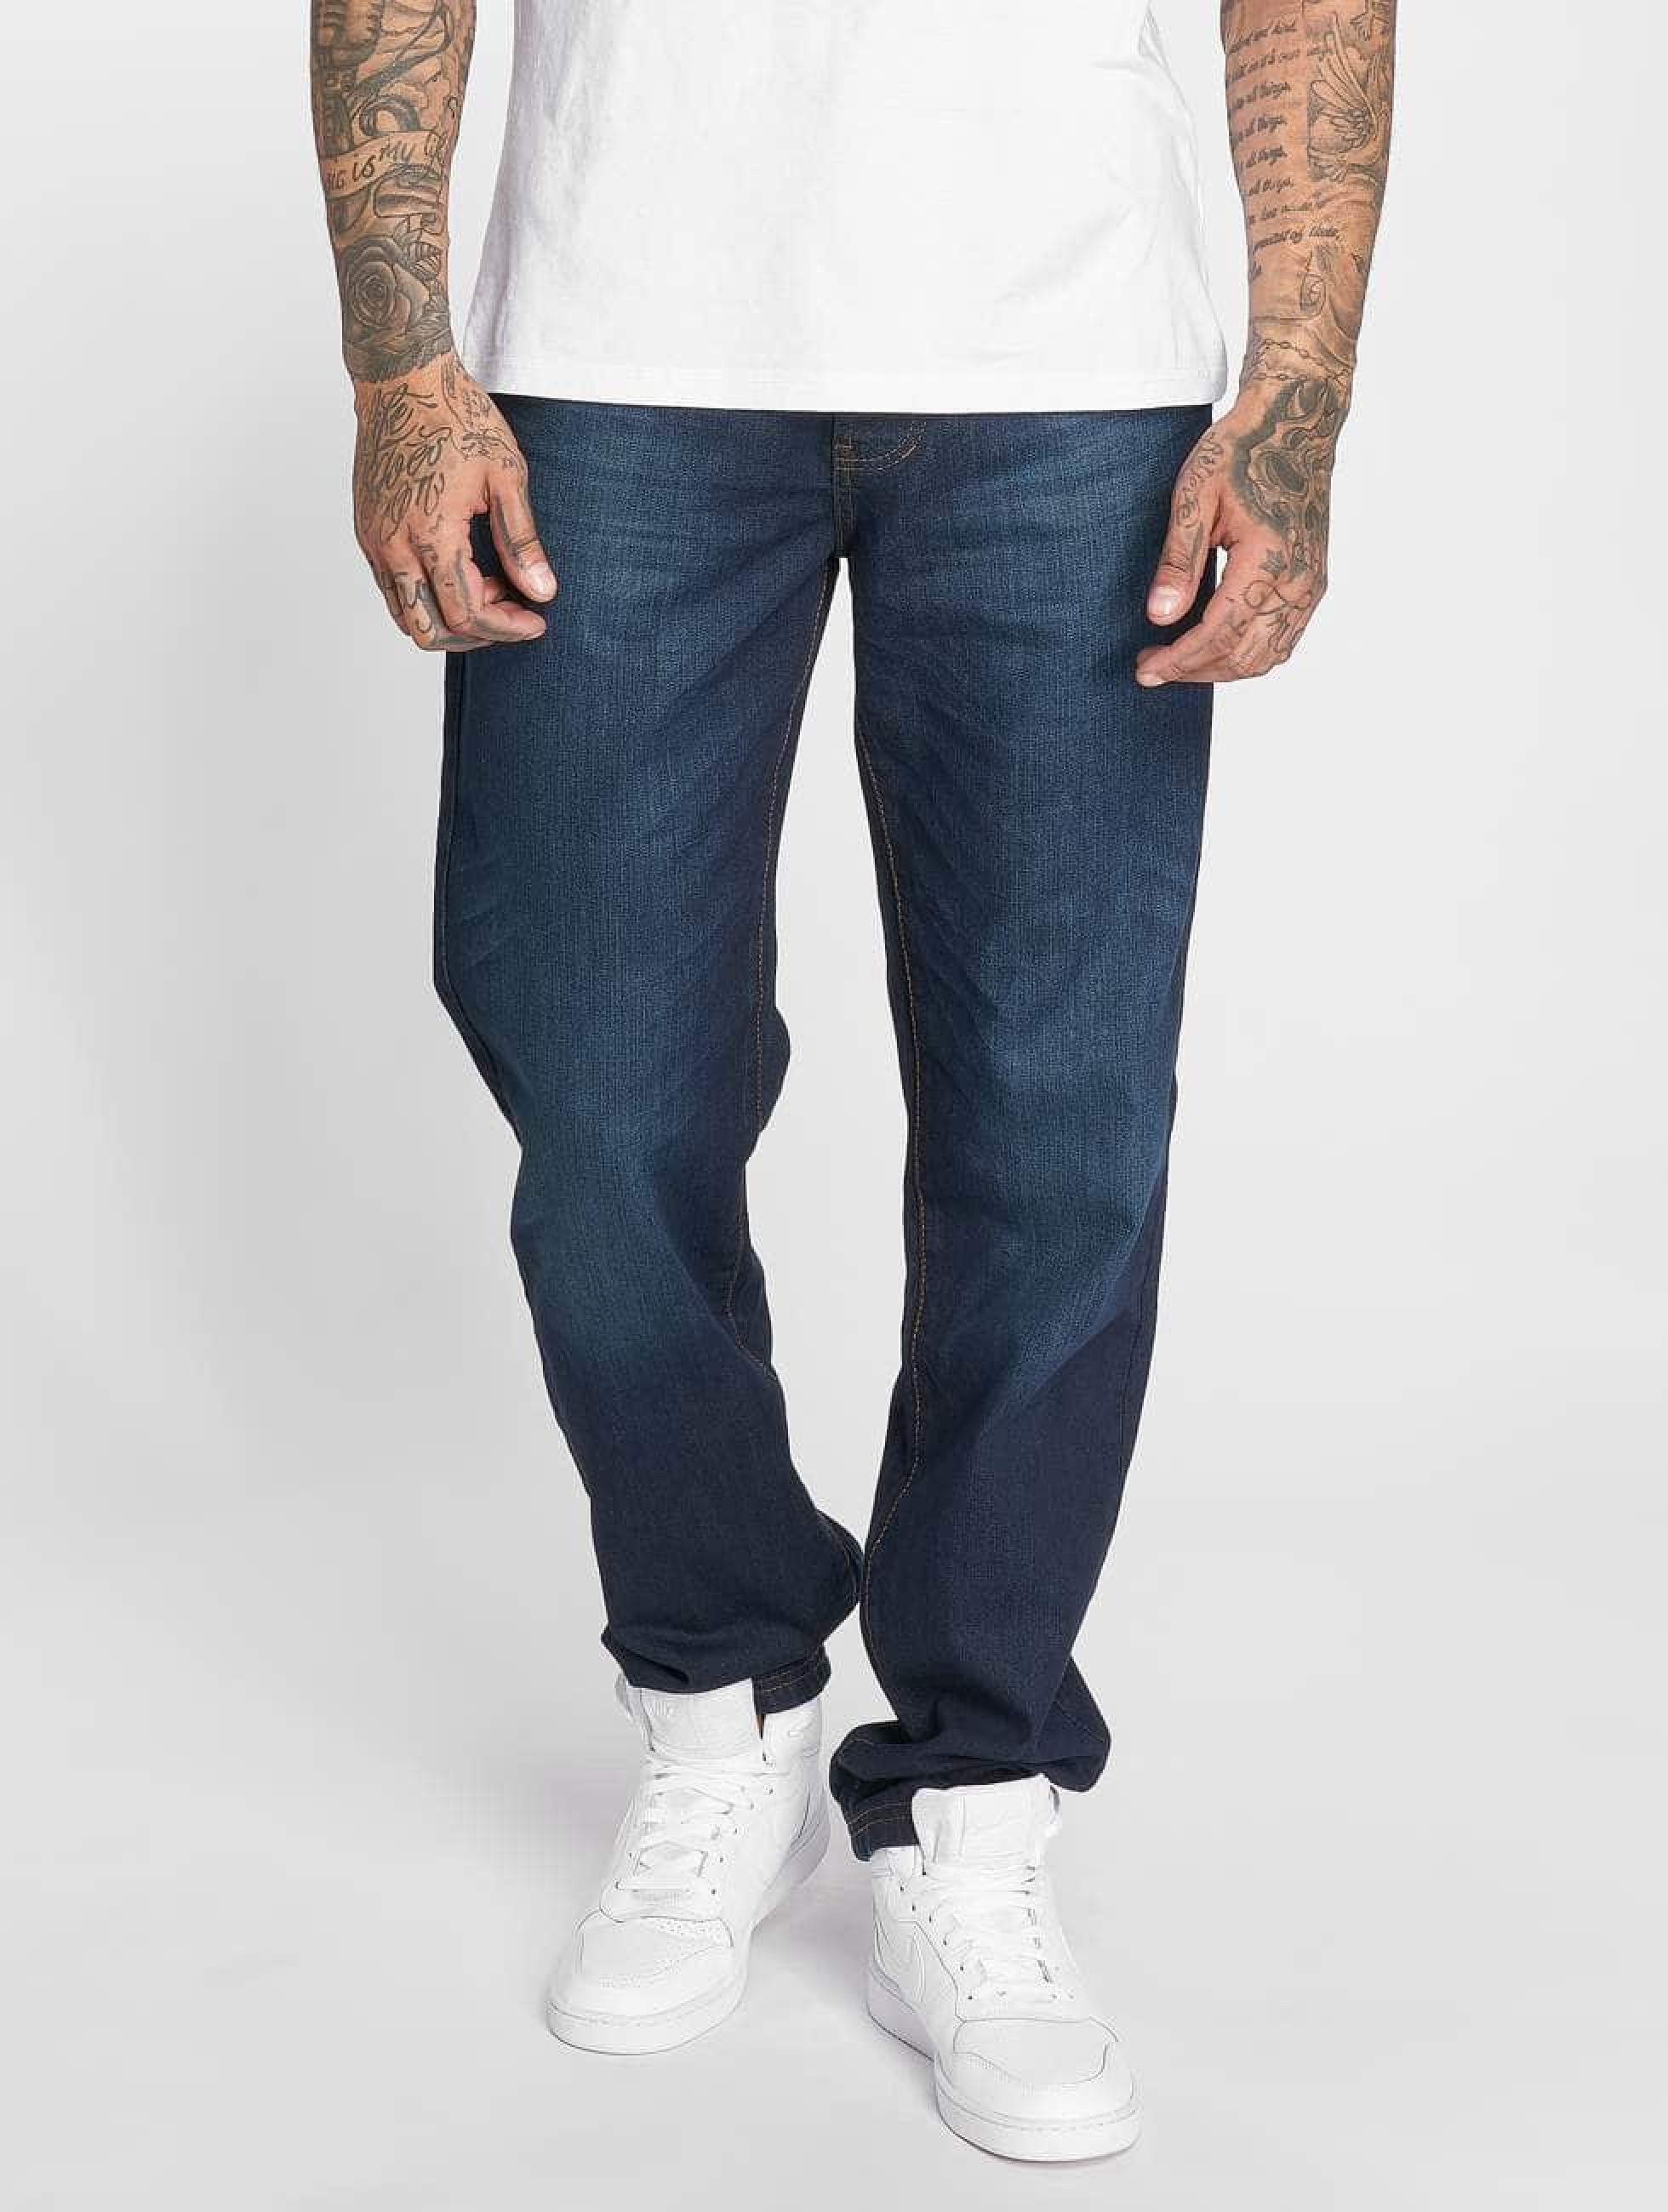 Thug Life / Carrot Fit Jeans B . Denim in blue W 33 L 32